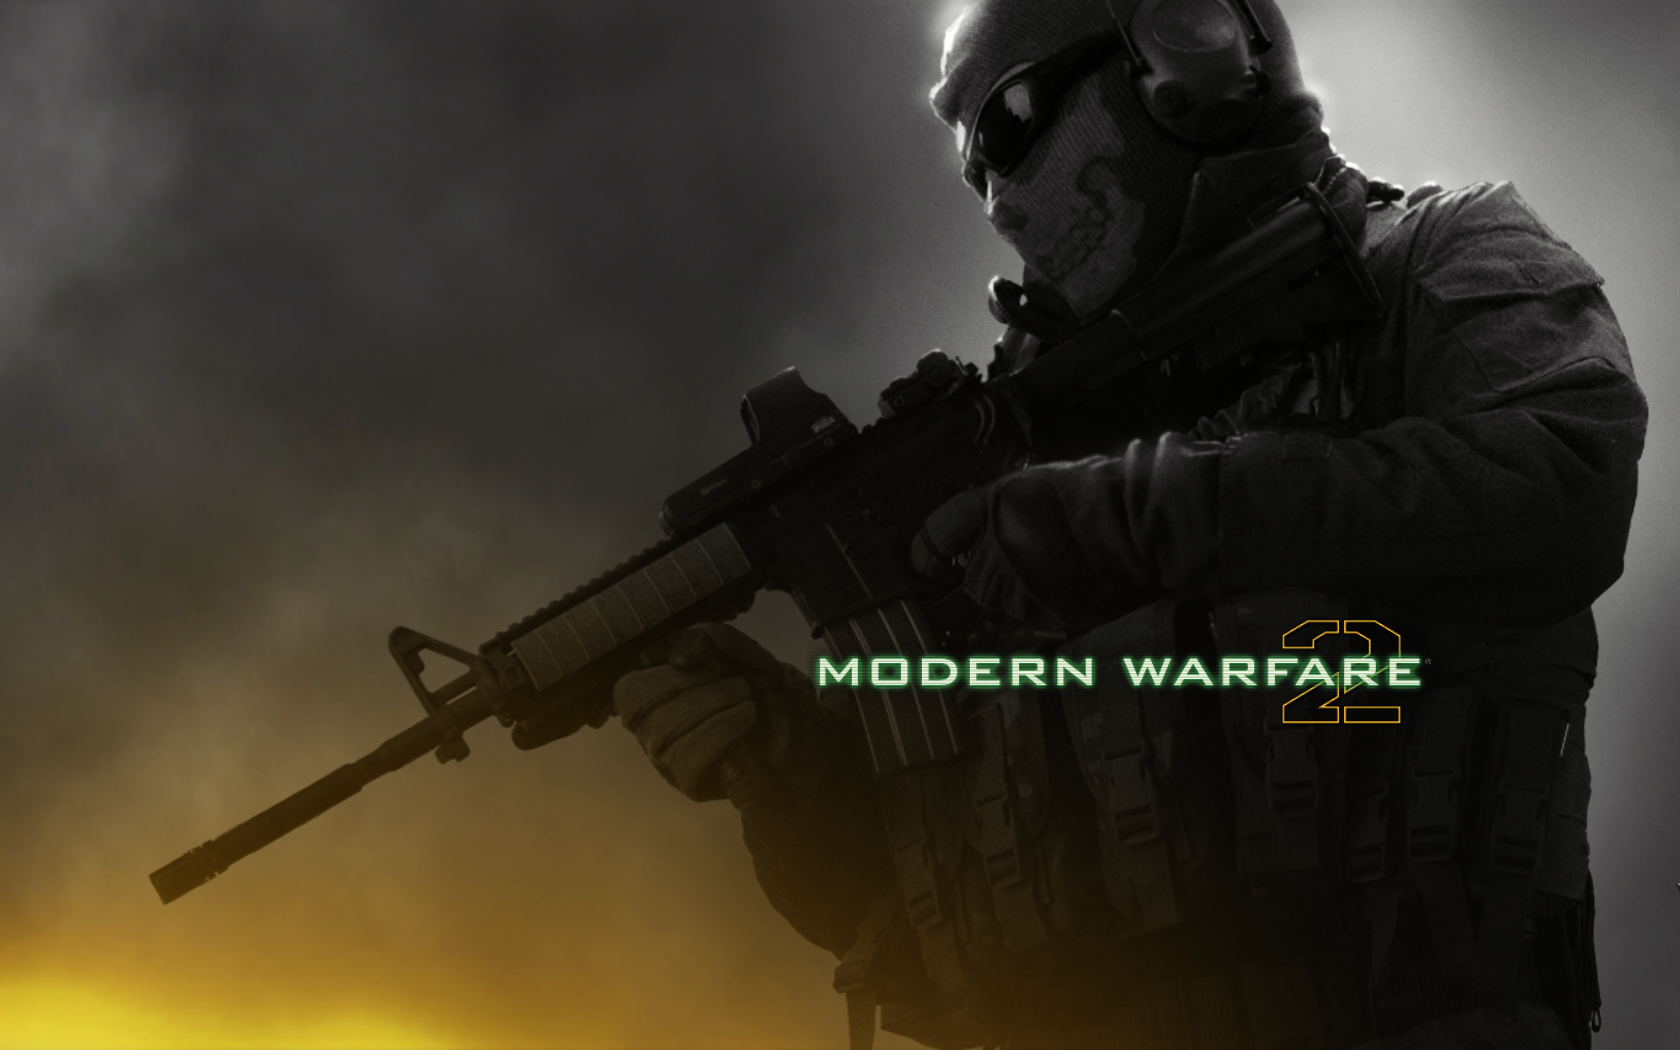 Mw2 Ghost Wallpaper - WallpaperSafari